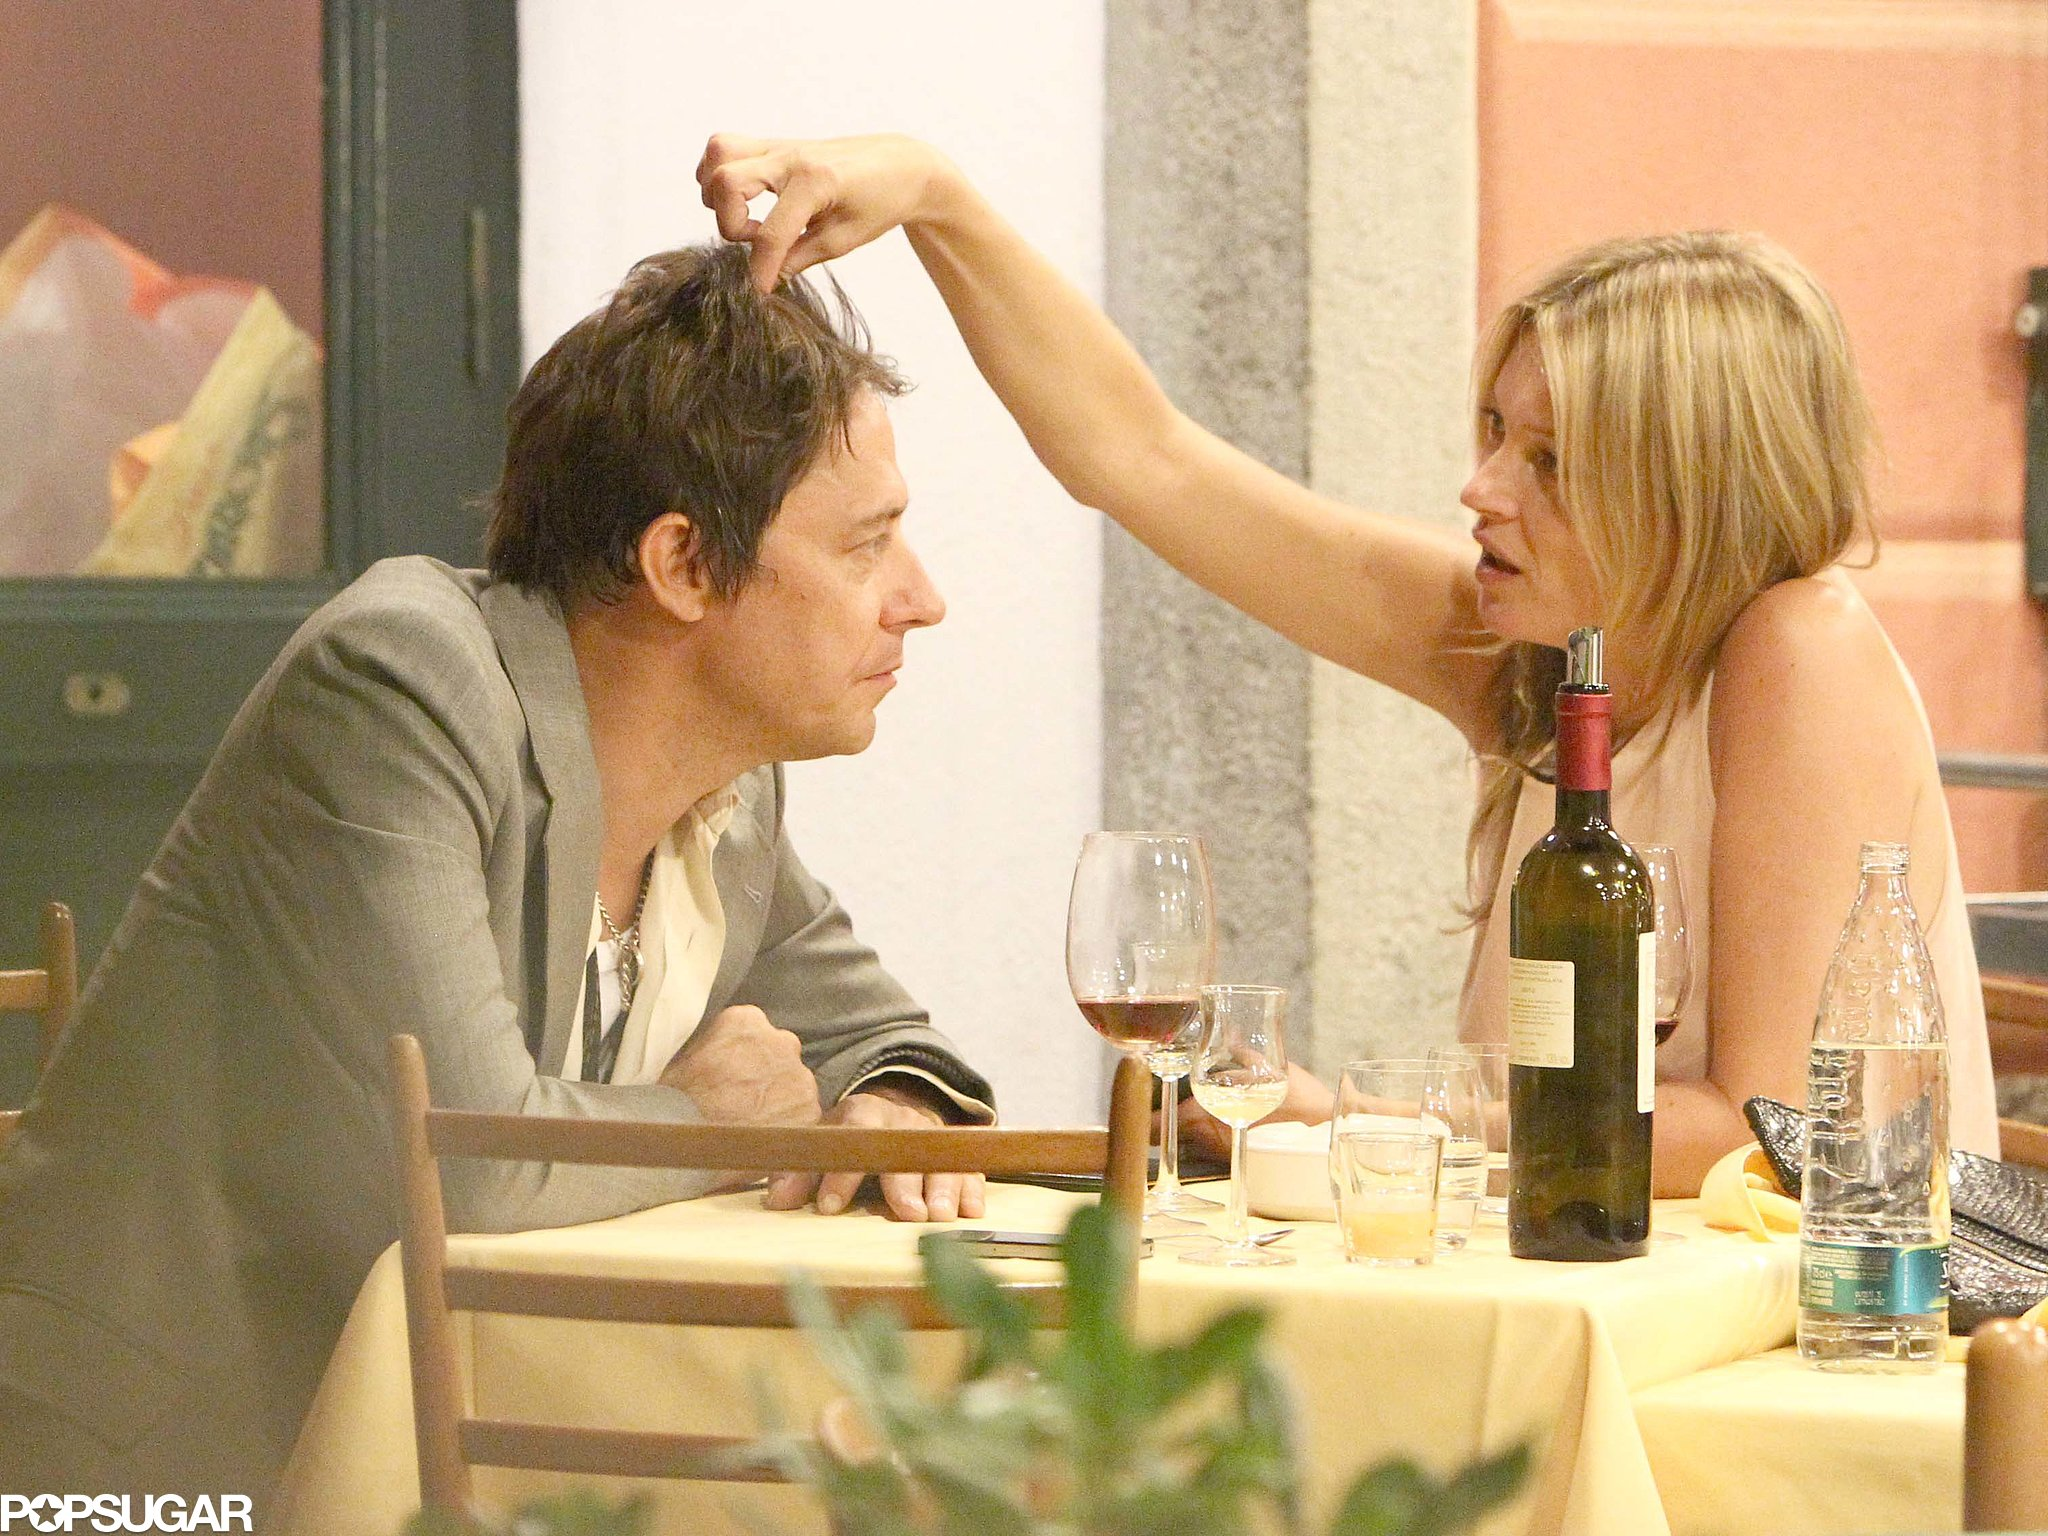 Kate Moss tousled Jamie Hince's hair.